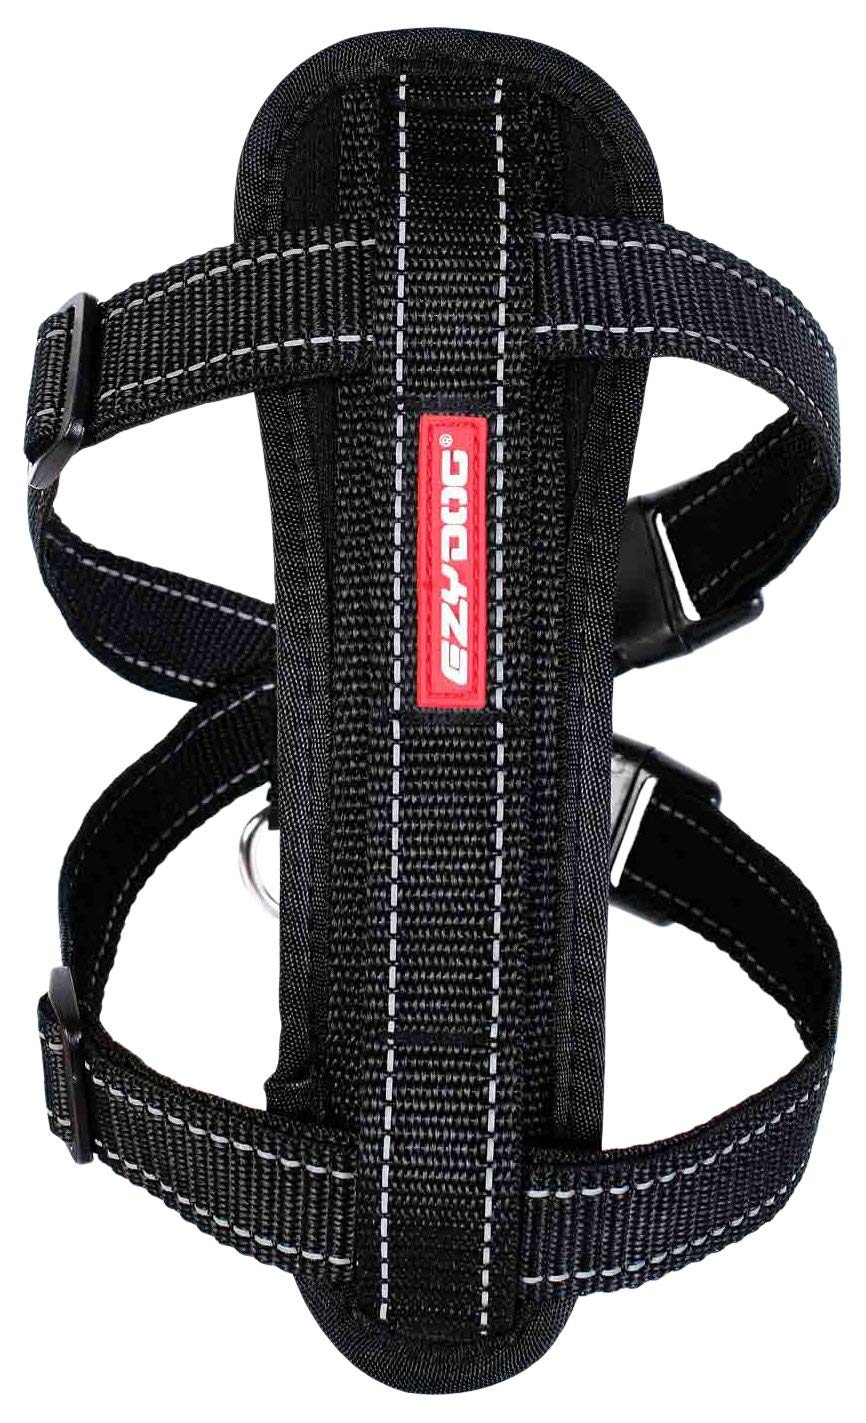 EzyDog Chest Plate Custom Fit Dog Pulling Harness Review by www.puppyurl.com